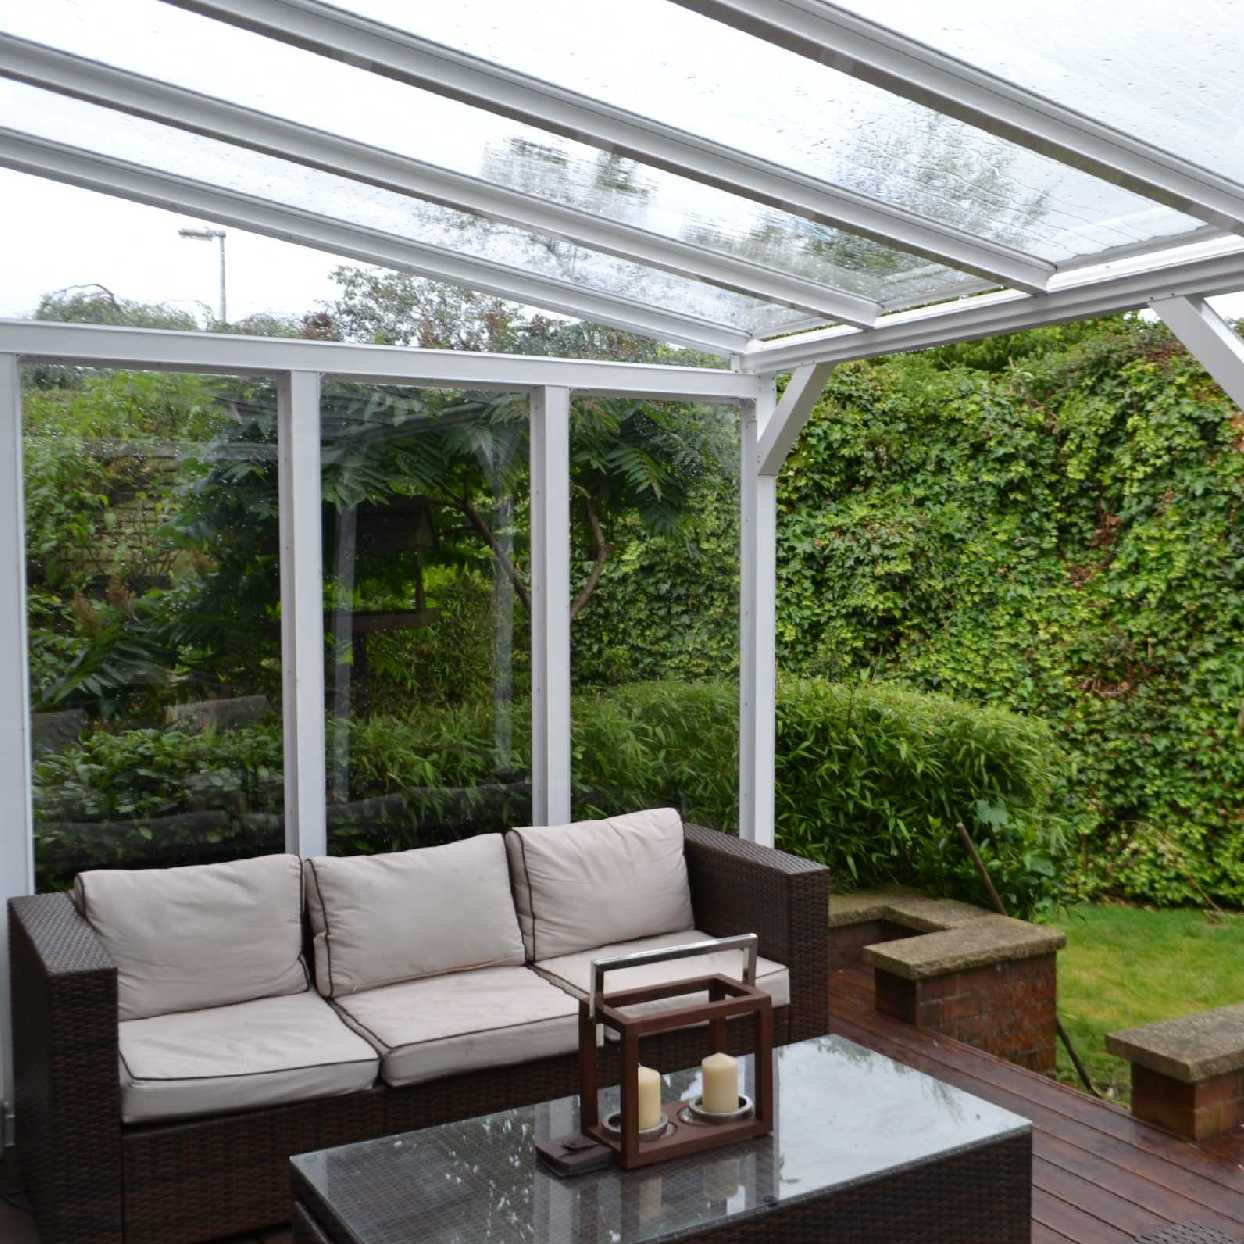 Great selection of Omega Smart Lean-To Canopy with 16mm Polycarbonate Glazing - 12.0m (W) x 2.5m (P), (5) Supporting Posts